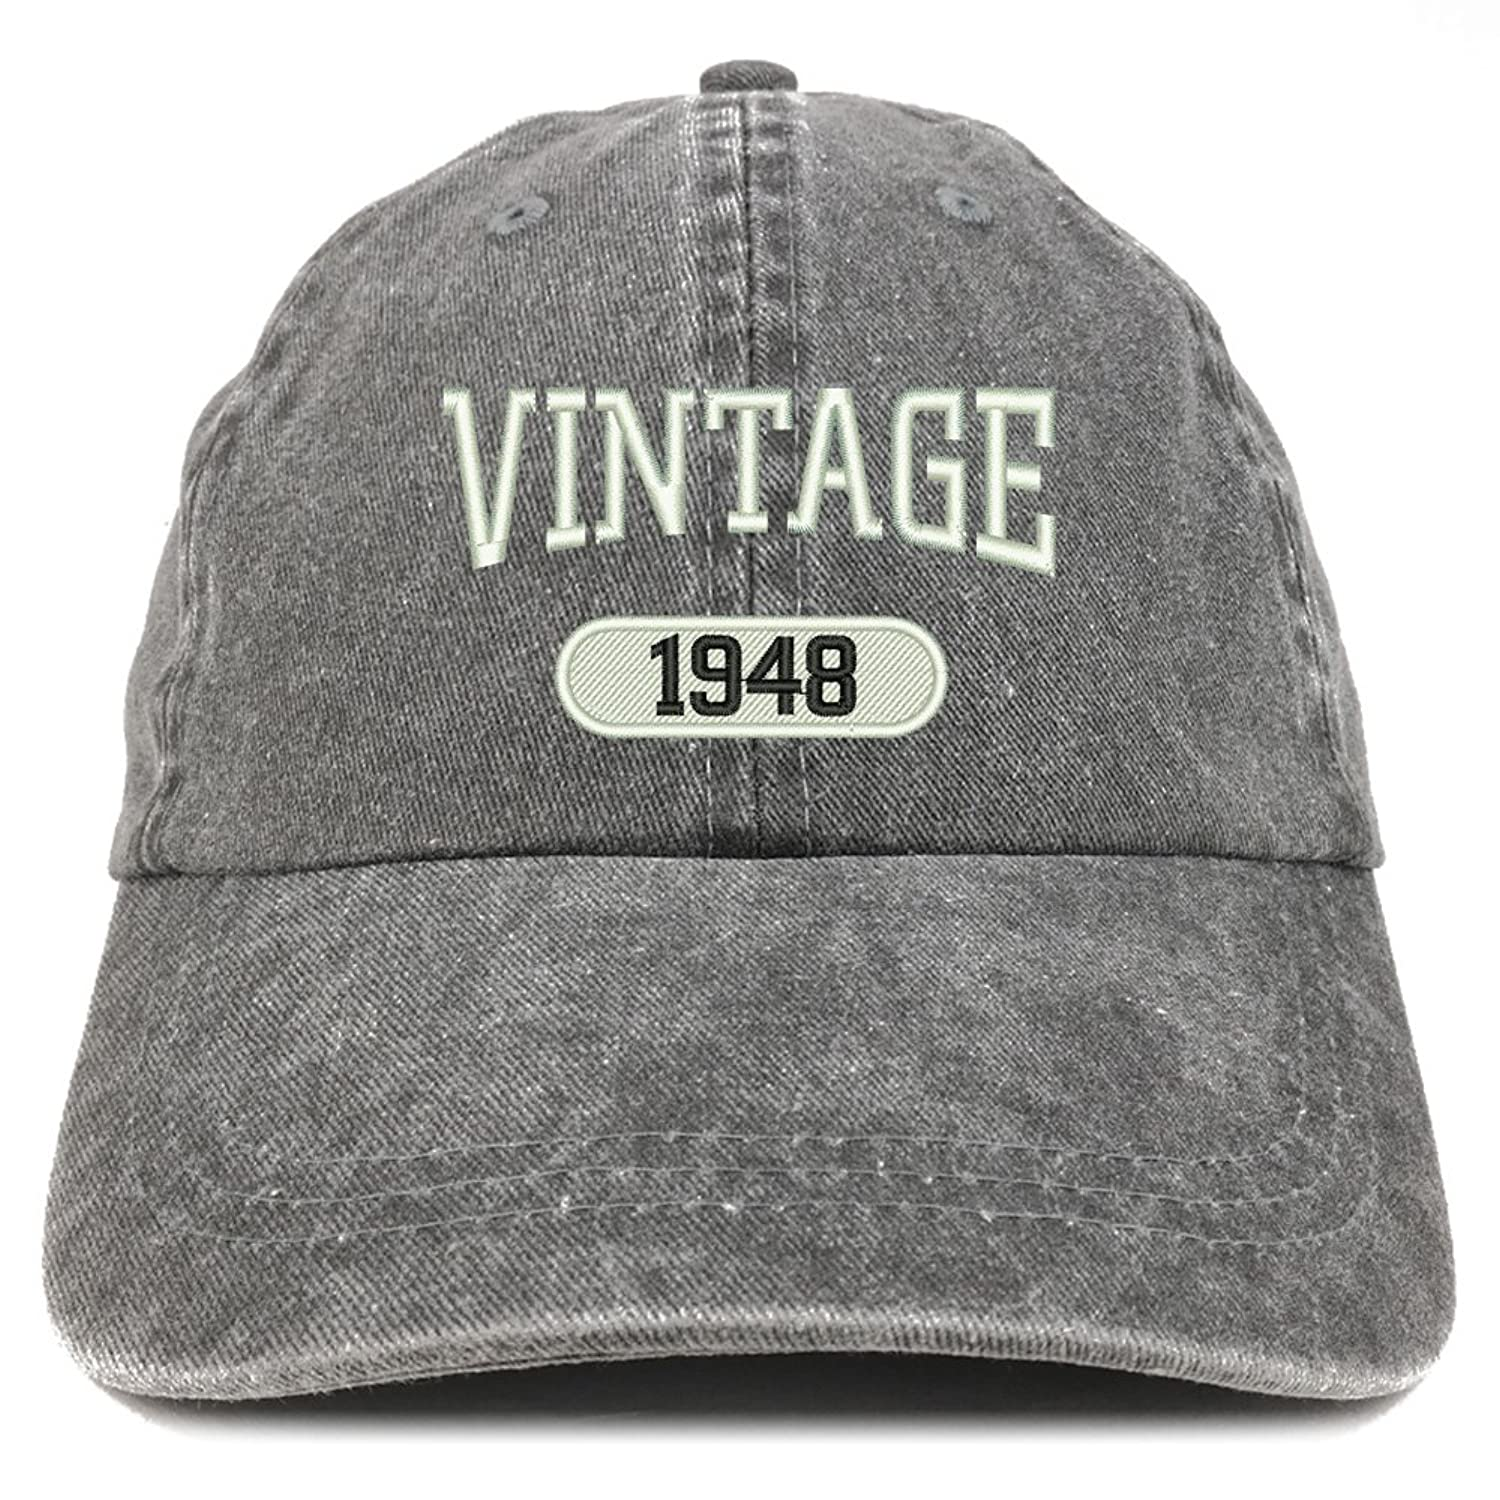 0d935b4d Low Profile, Pigment Dyed, Cotton Twill Washed Cap 6 Panels with 6  Embroidered Ventilation Eyelets Self-Fabric Strap with Easy Adjustable  Brass Snap Buckle ...